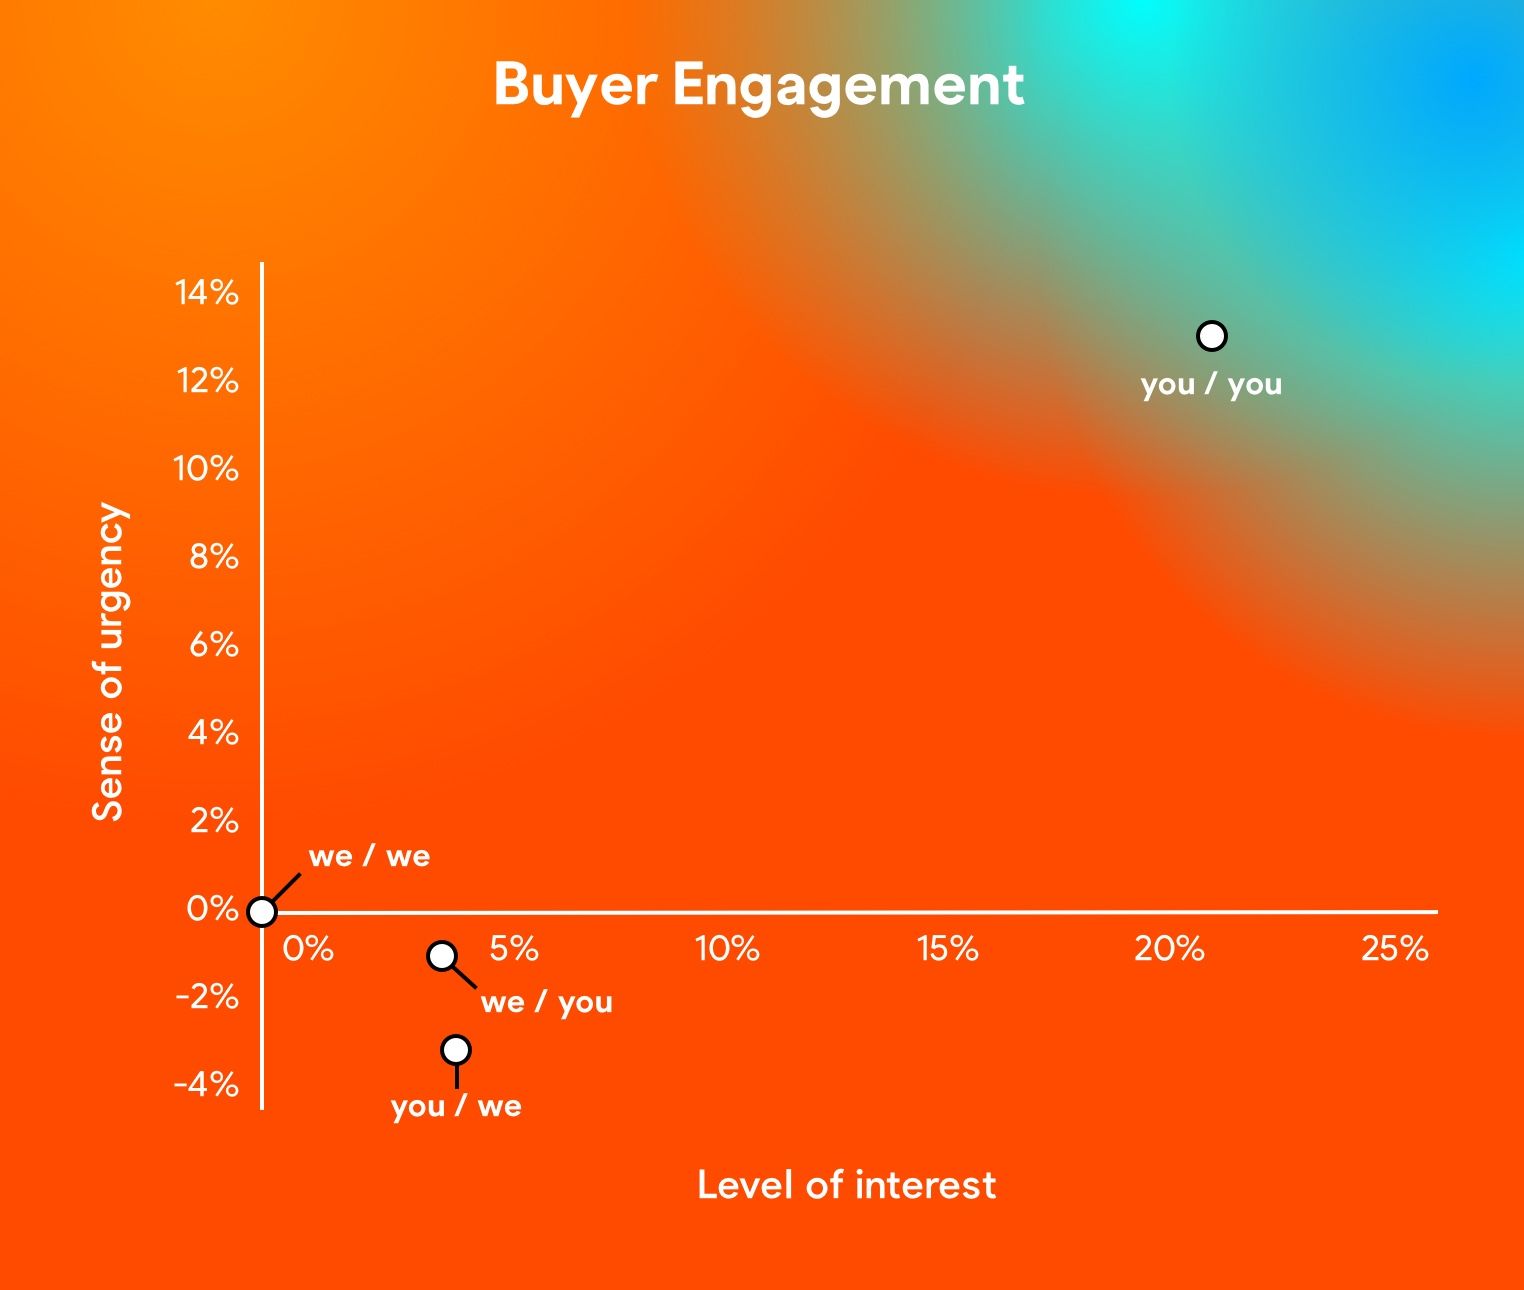 Chart 1: 'You'-phrasing creates most buyer engagement